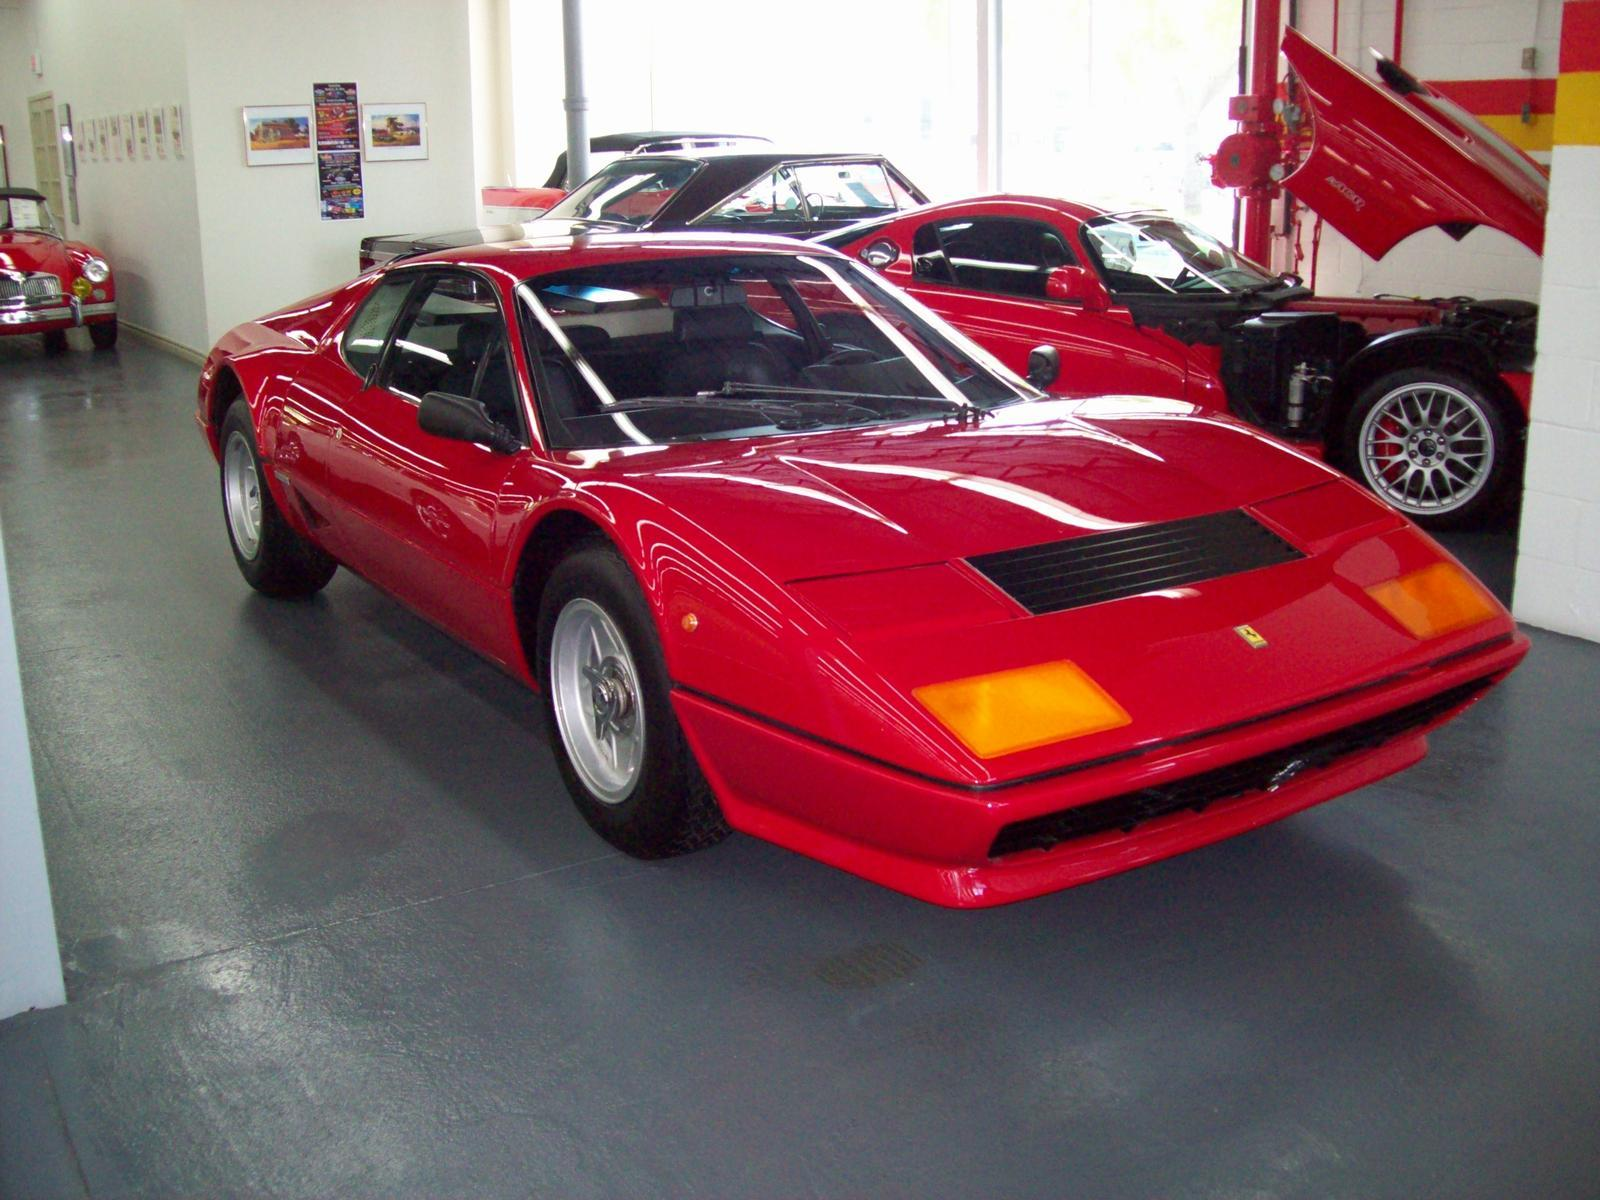 like sale gts replica thing the classic cars this real a stunning dino looks really used simply rea ferrari